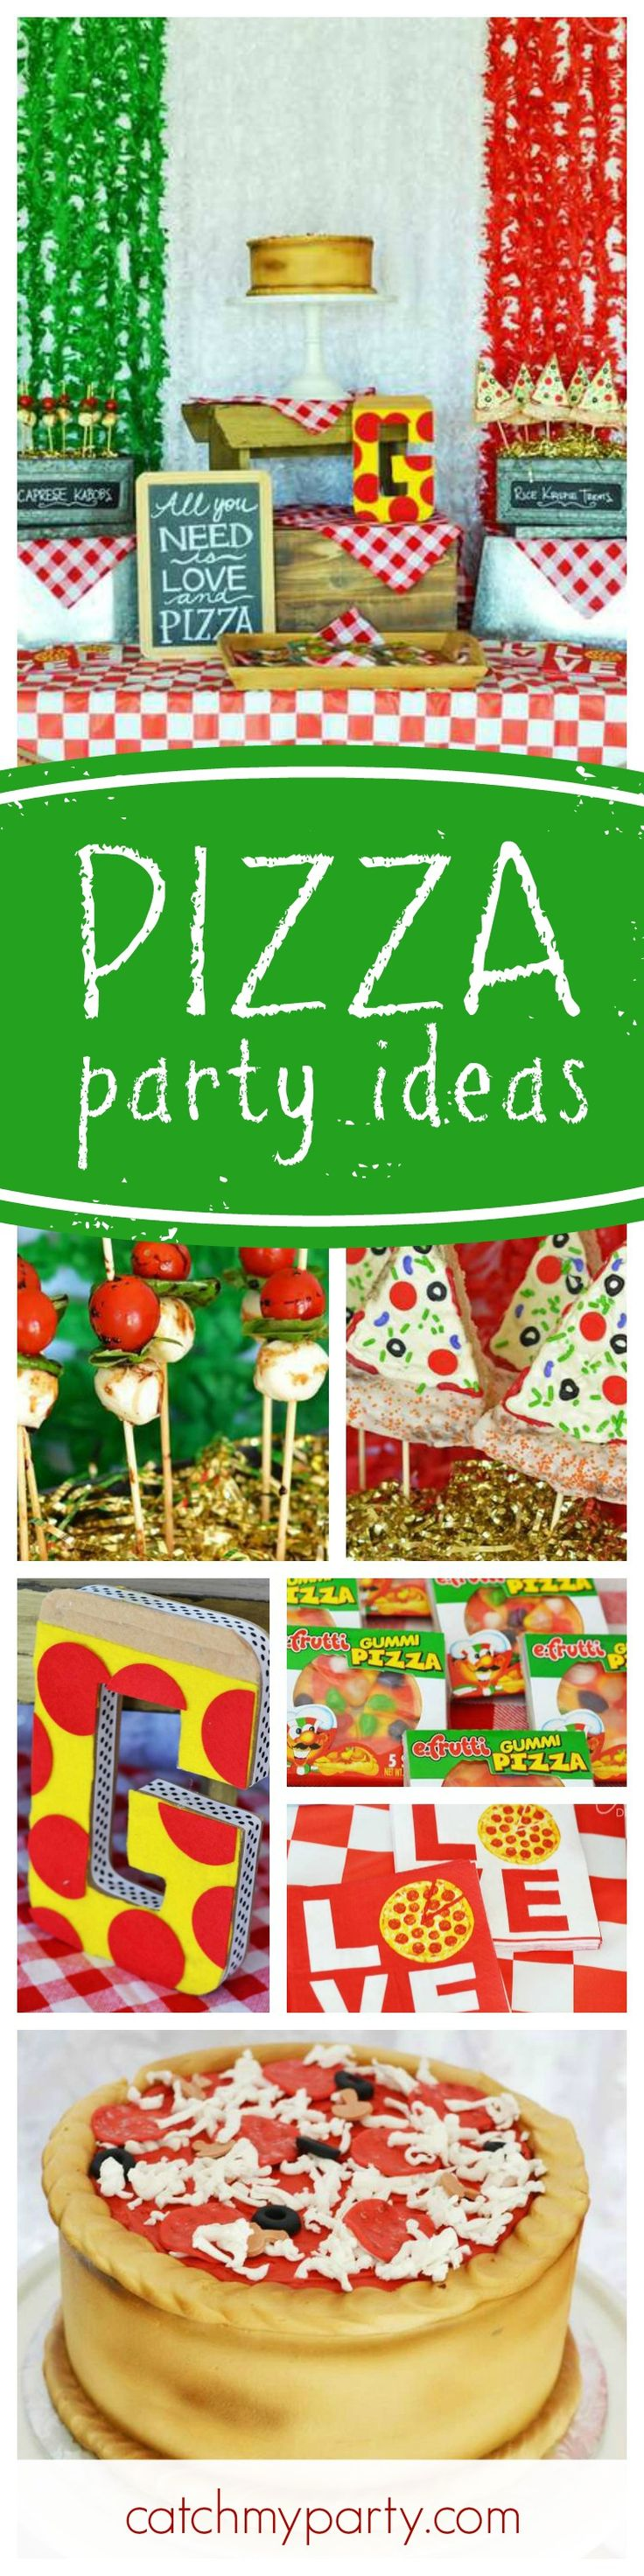 If you're a pizza lover you'll love this great Pizza birthday party! The pizza cake looks delicious!! See more party ideas and share yours at CatchMyParty.com